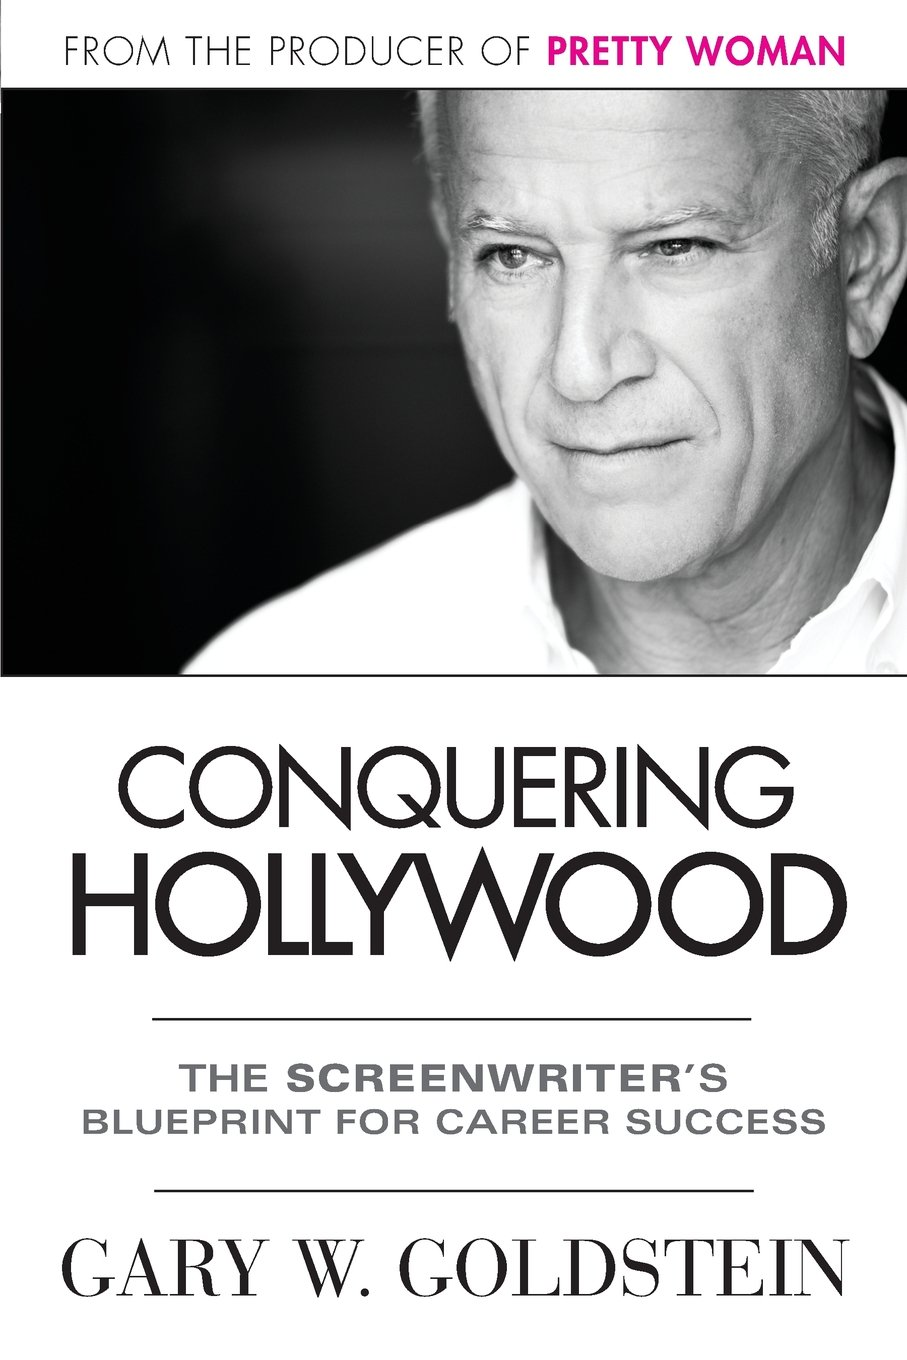 Conquering hollywood the screenwriters blueprint for career conquering hollywood the screenwriters blueprint for career success gary w goldstein jeanne mccafferty 9780989715201 amazon books malvernweather Gallery